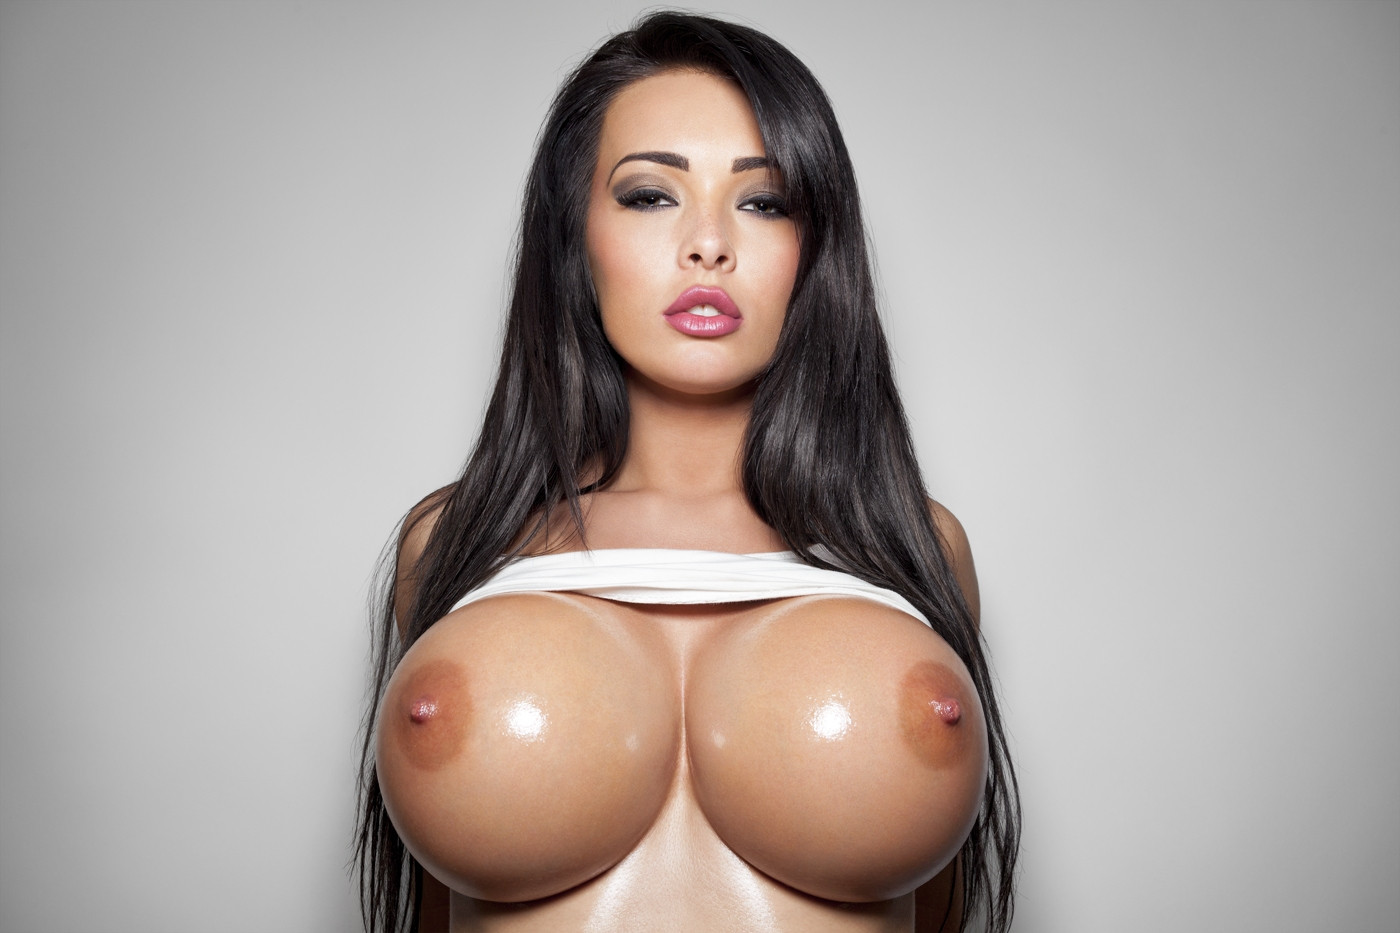 Ful size boobs pron sexy gallery